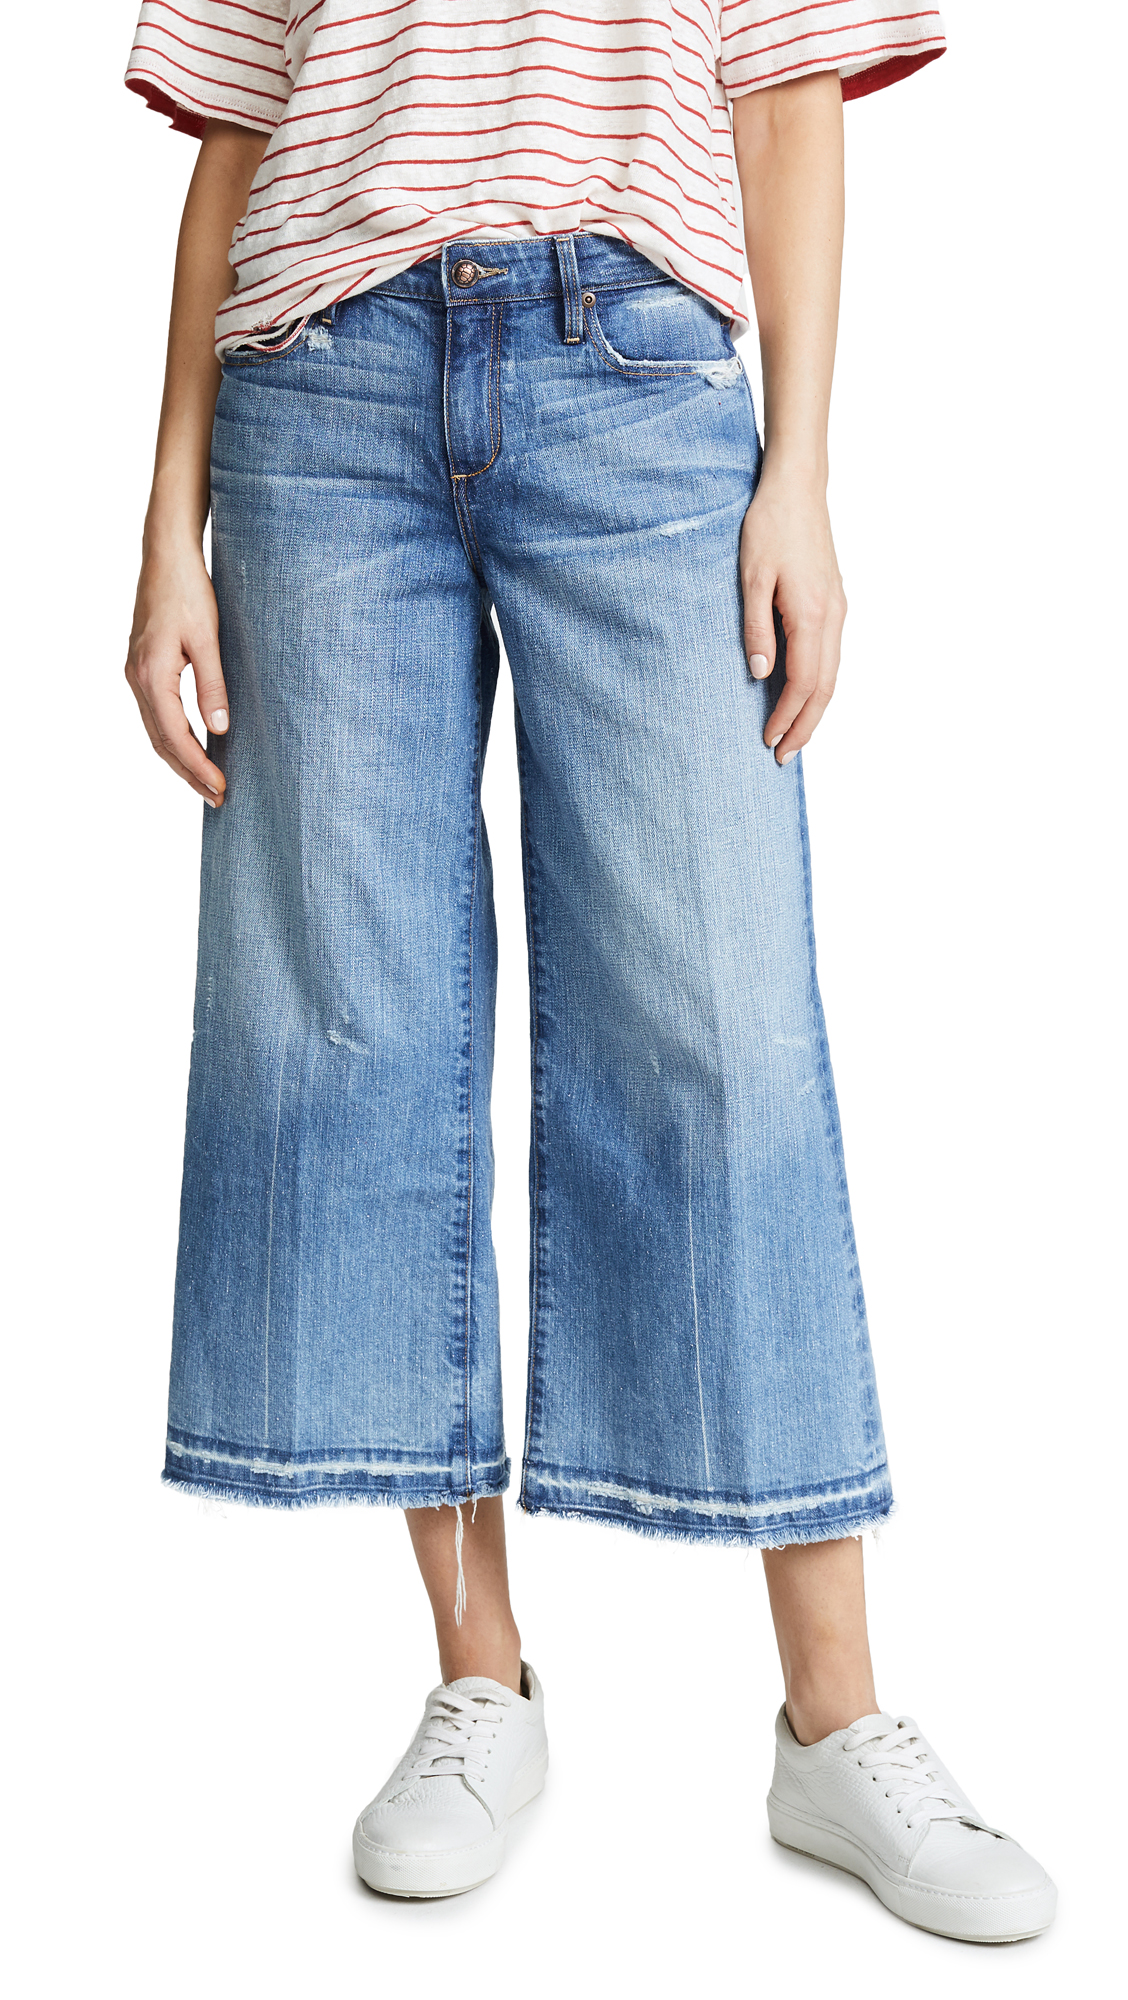 Tortoise Canni Slouchy Jeans